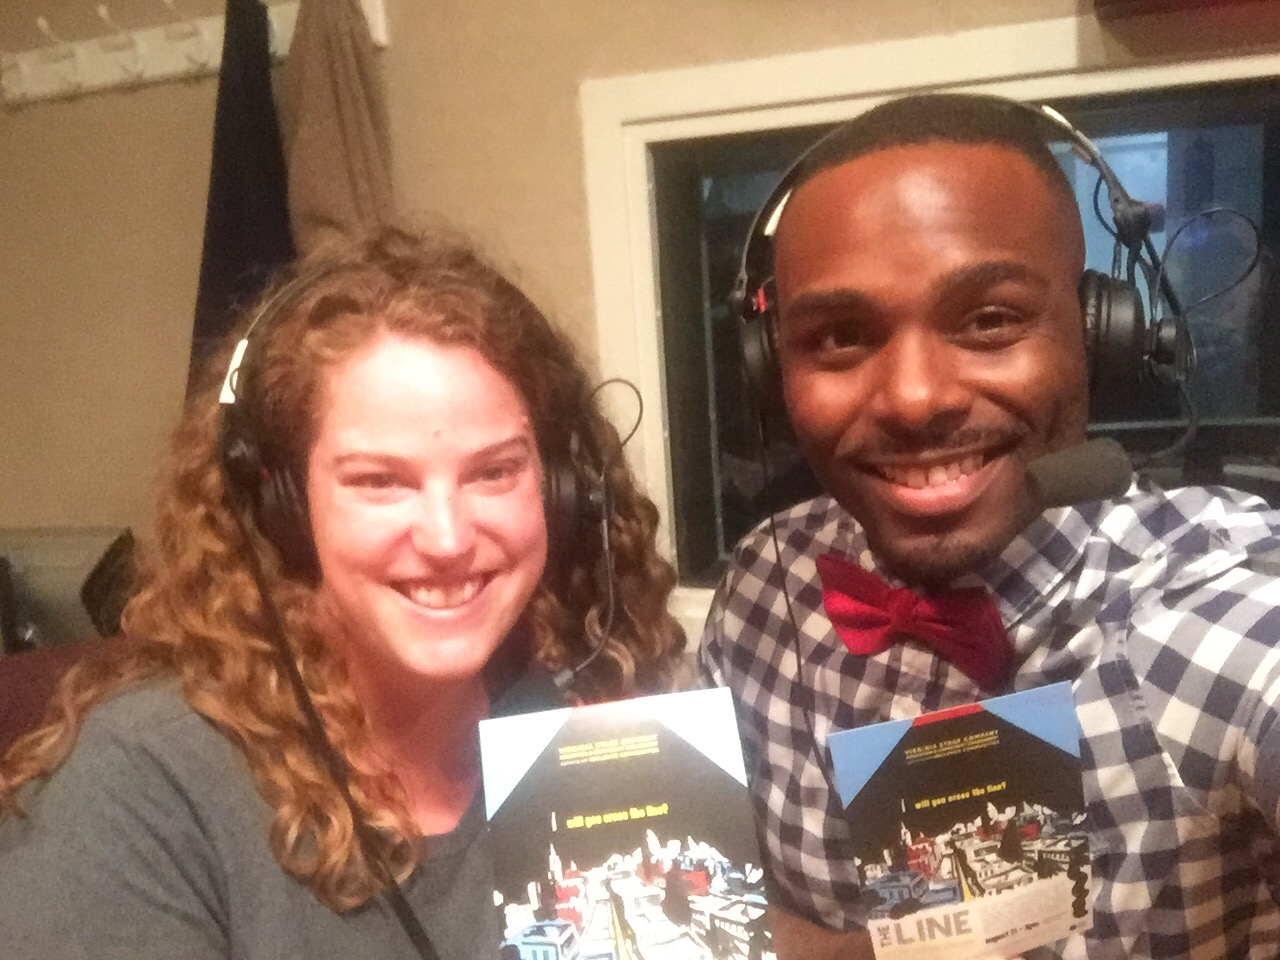 VSC Resident Theatre Artists,Kat Martin (left) and Tommy Coleman (right), at an interview with WHRO